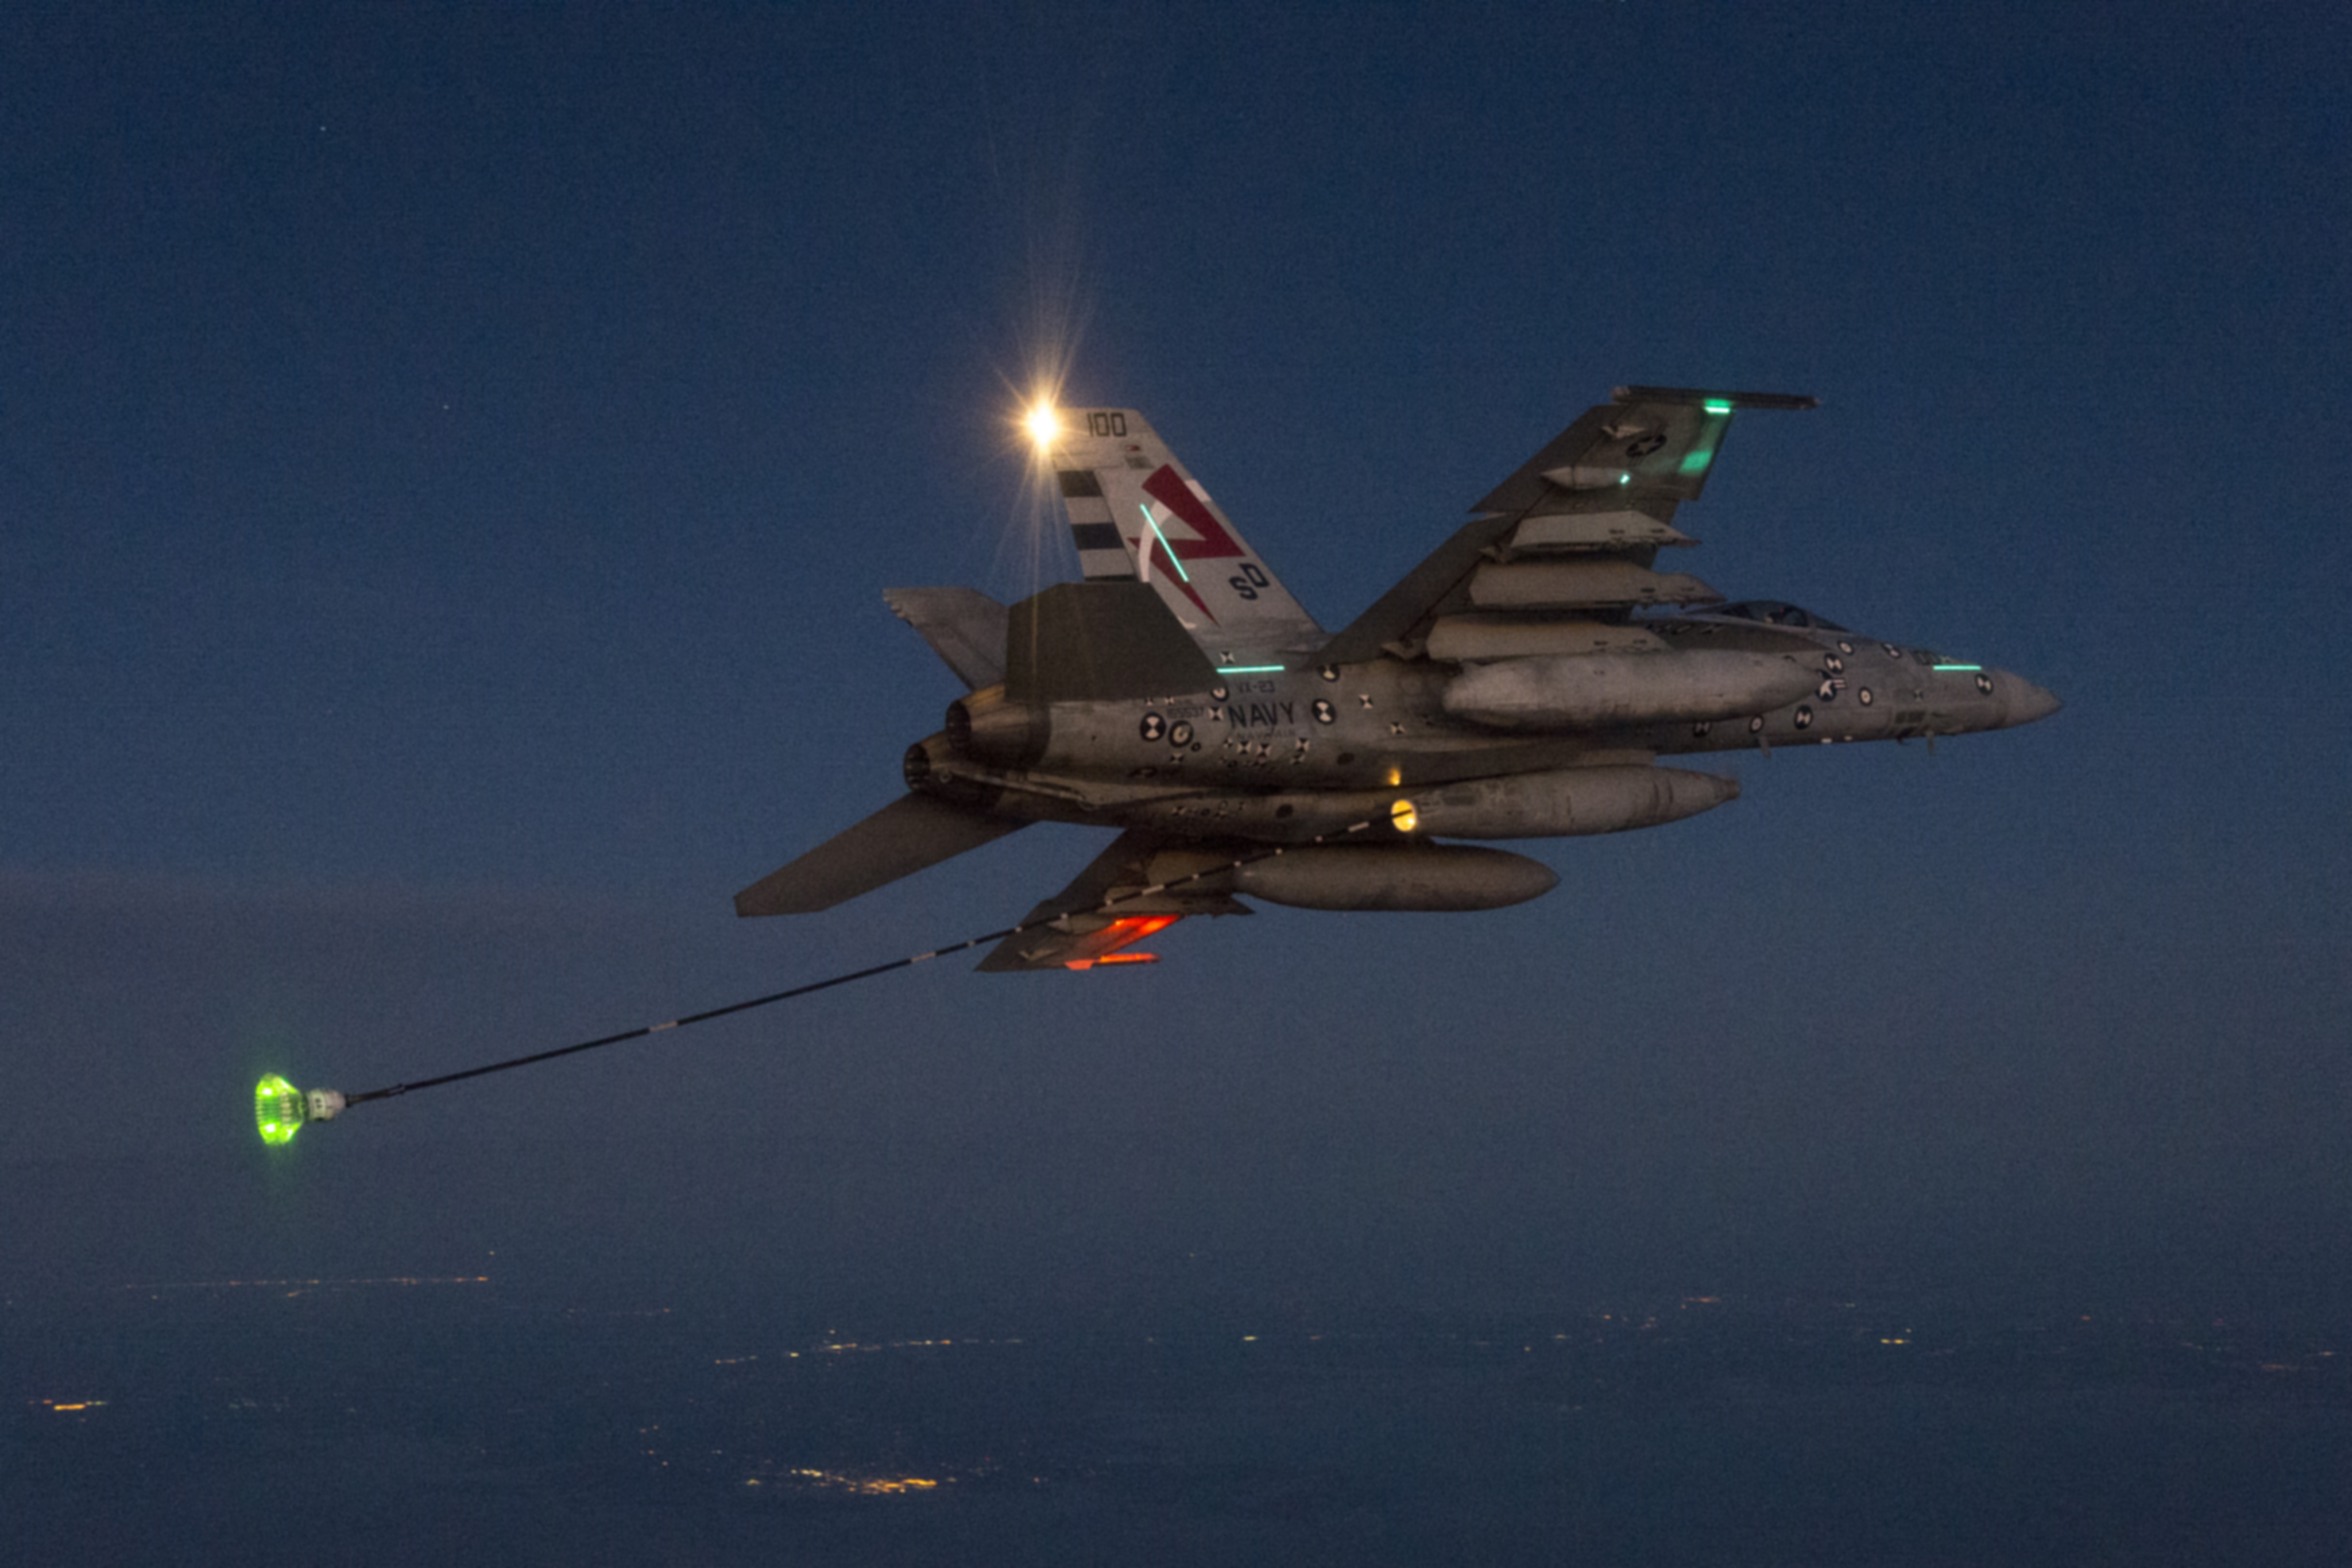 U.S. Navy F/A-18E Salty Dog 100 of Air Test and Evaluation Squadron Two Three (VX-23) conduct night-time ARS ADV (Aerial Refueling Store Air Defense Variant) Low FOD Drogue Evaluation over the Chesapeake Bay on 14 Jan. 2016. VX-23 is part of Naval Test